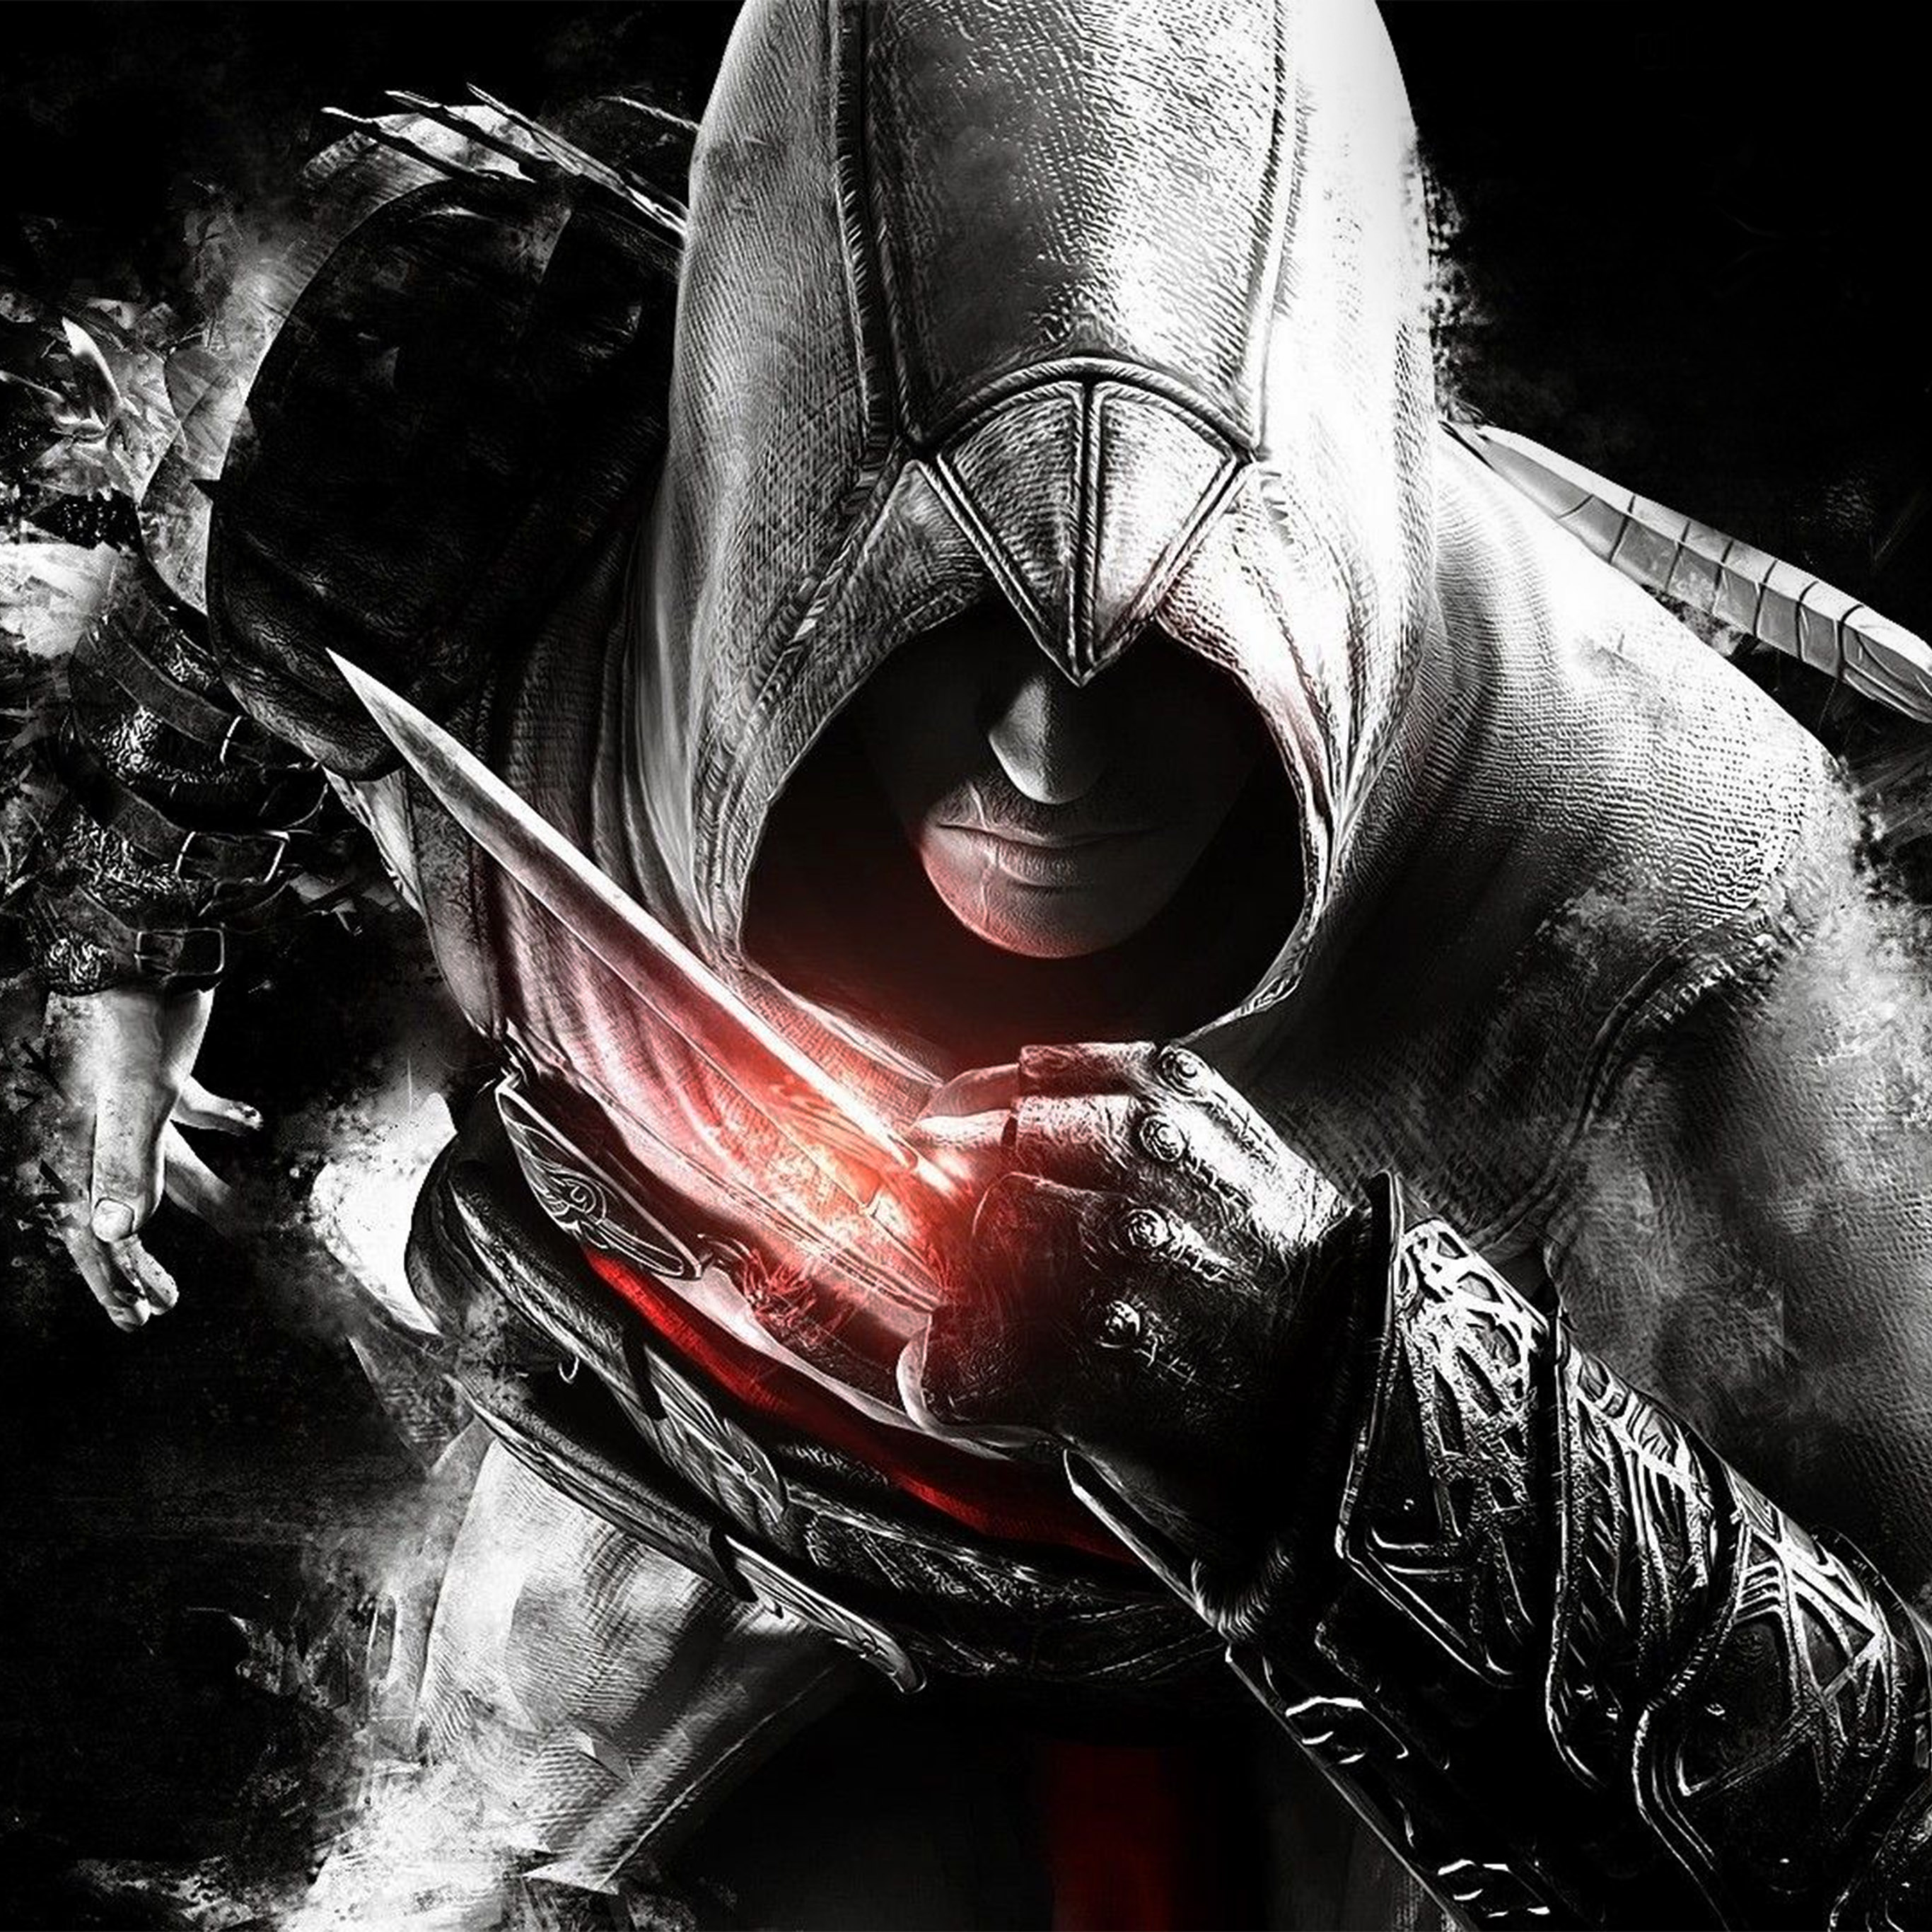 Av03 Assassins Creed Dark Game Hero Illustration Art Wallpaper